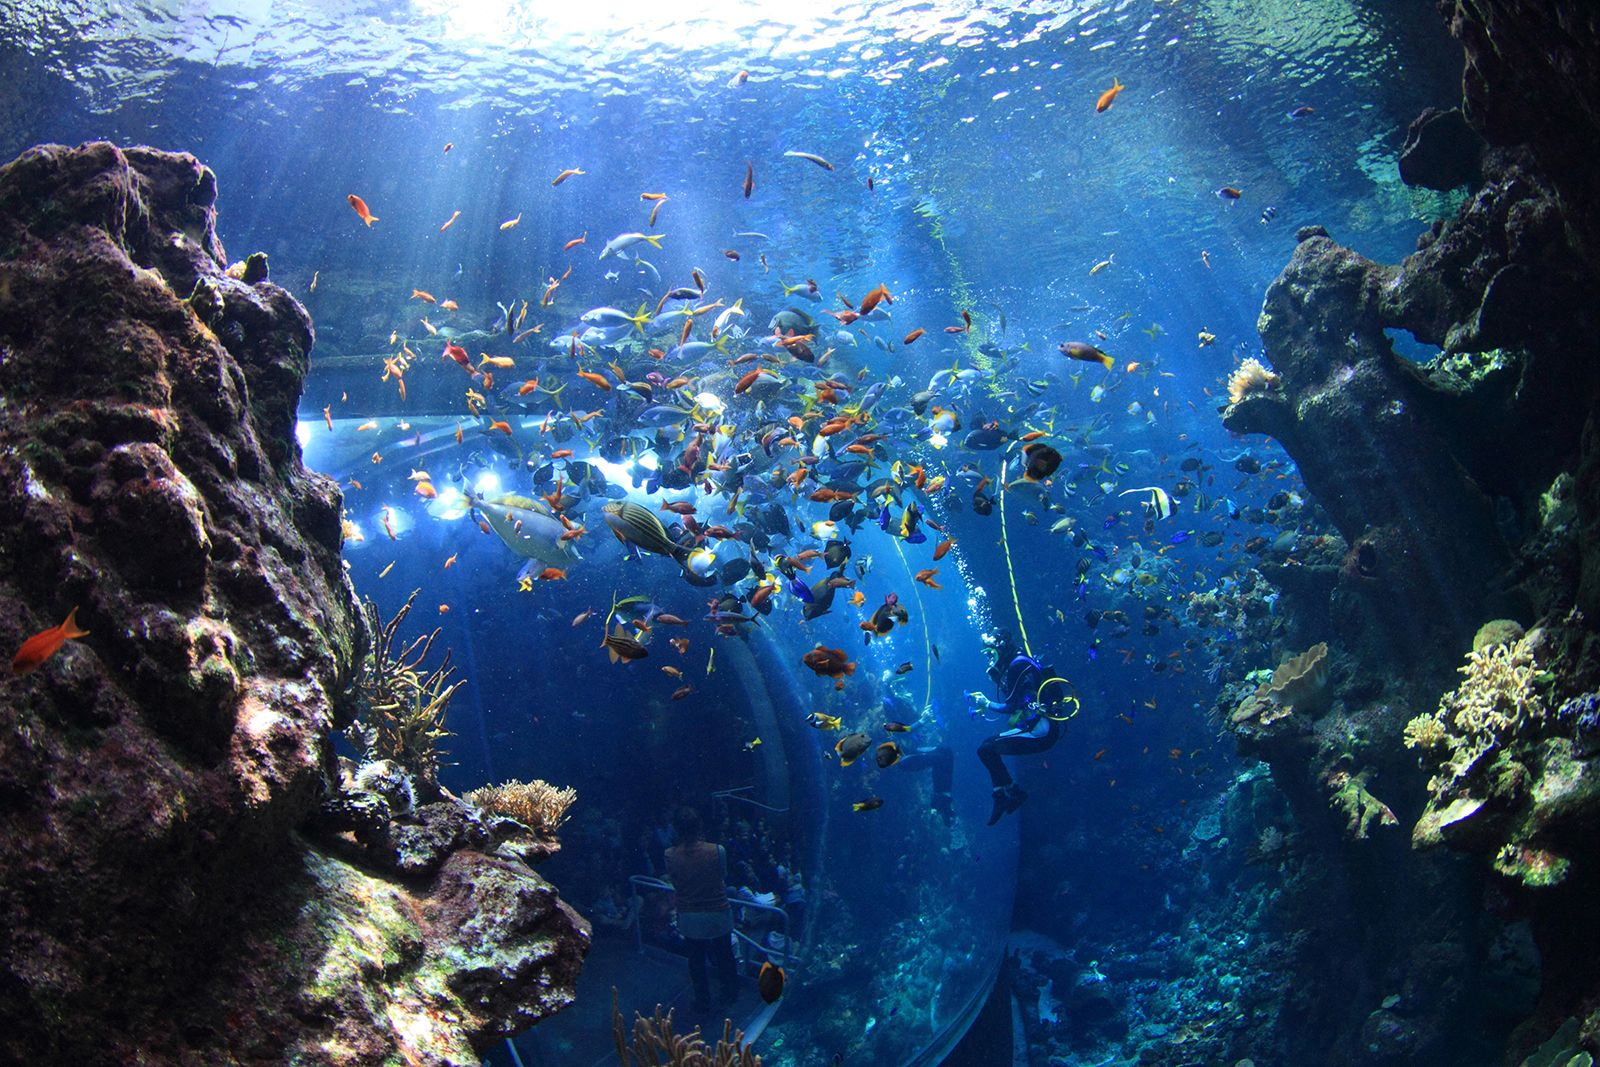 The Best Aquariums in California (With images) | San ...